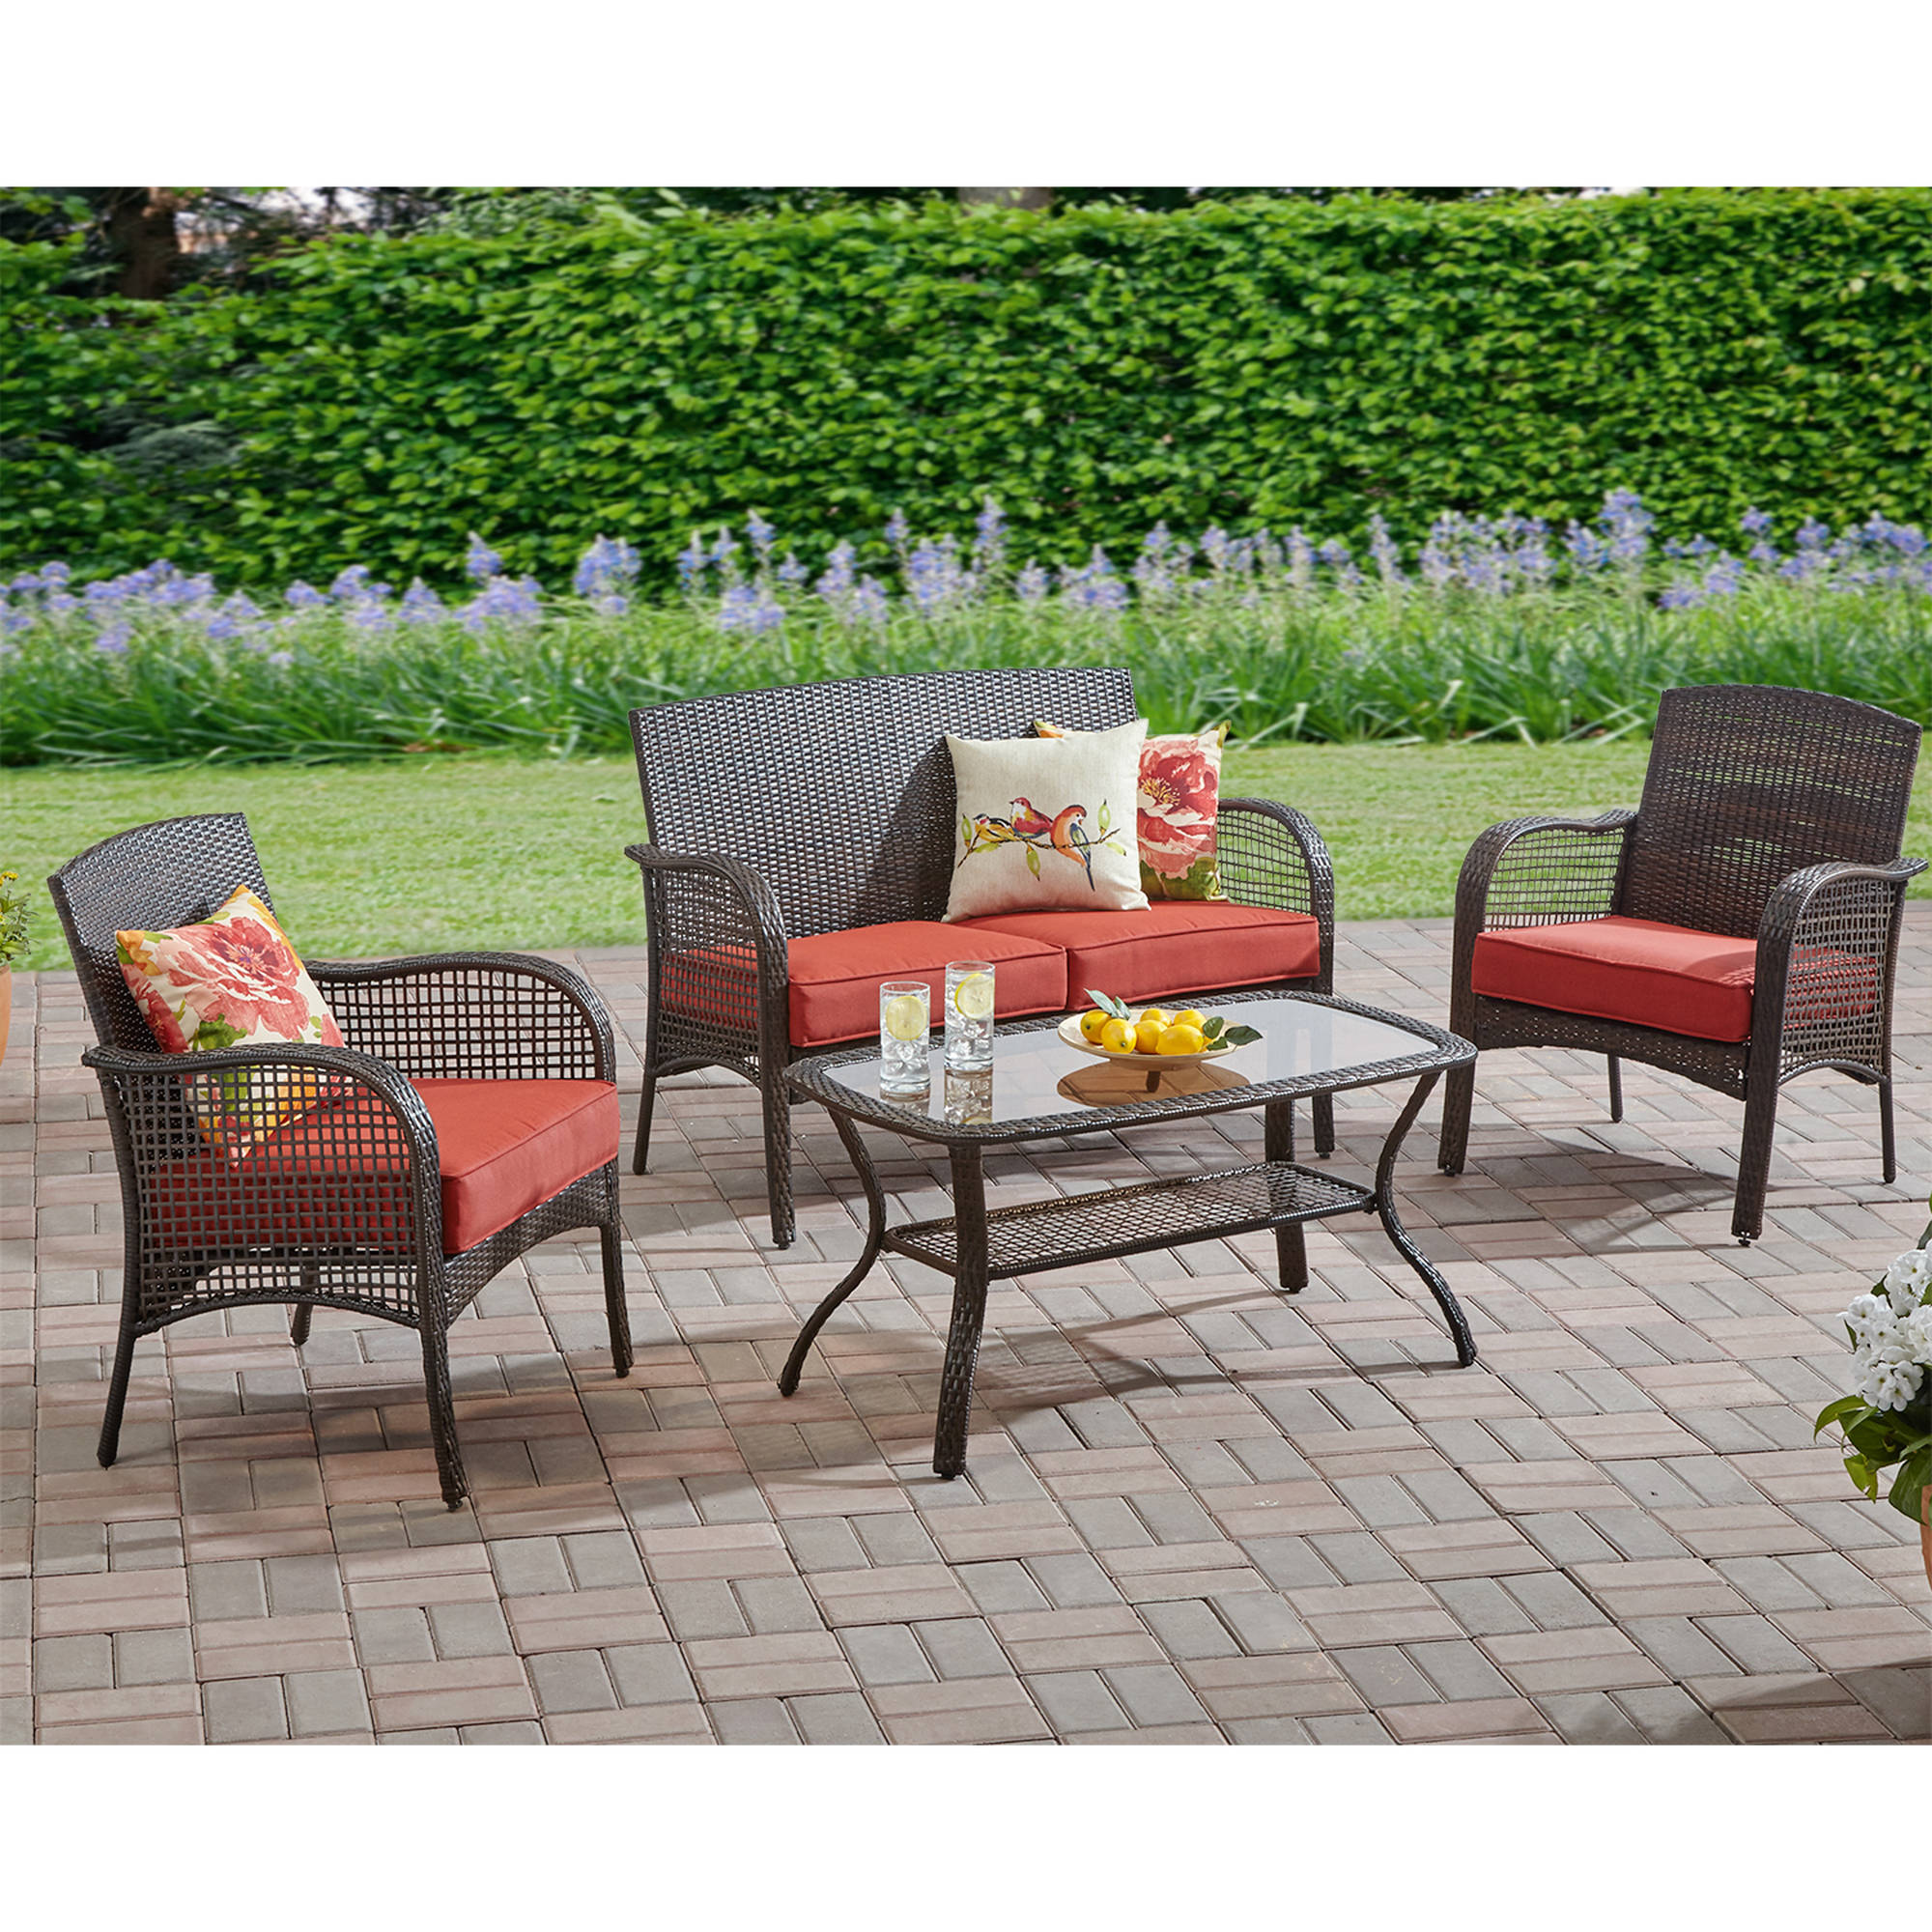 Mainstays Cambridge Park 4-Piece Outdoor Conversation Set, Seats 4